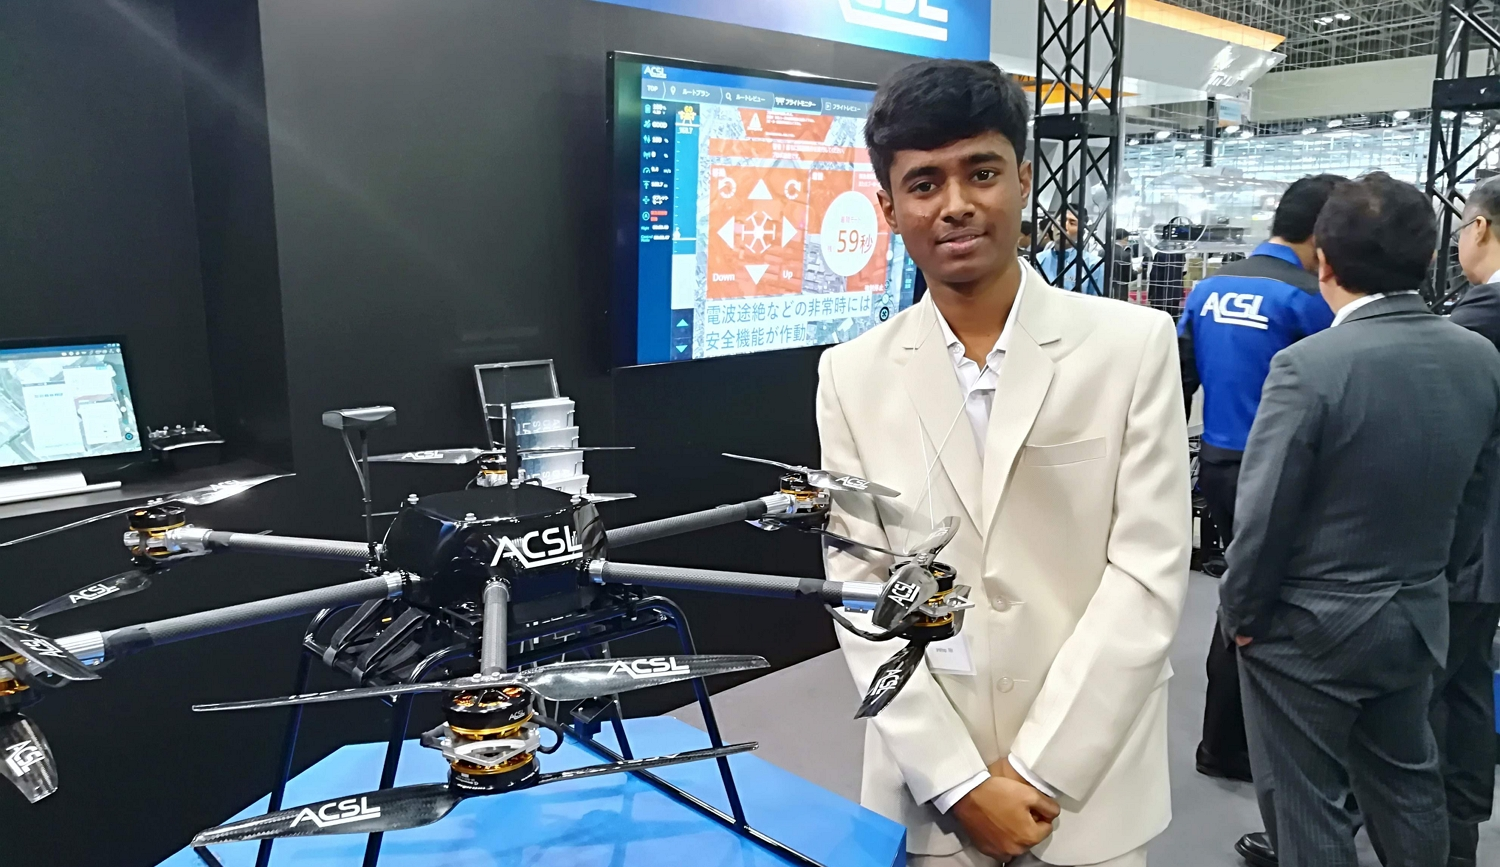 fact-check: did 22-year-old 'drone boy' prathap nm really make 600 drones using e-waste